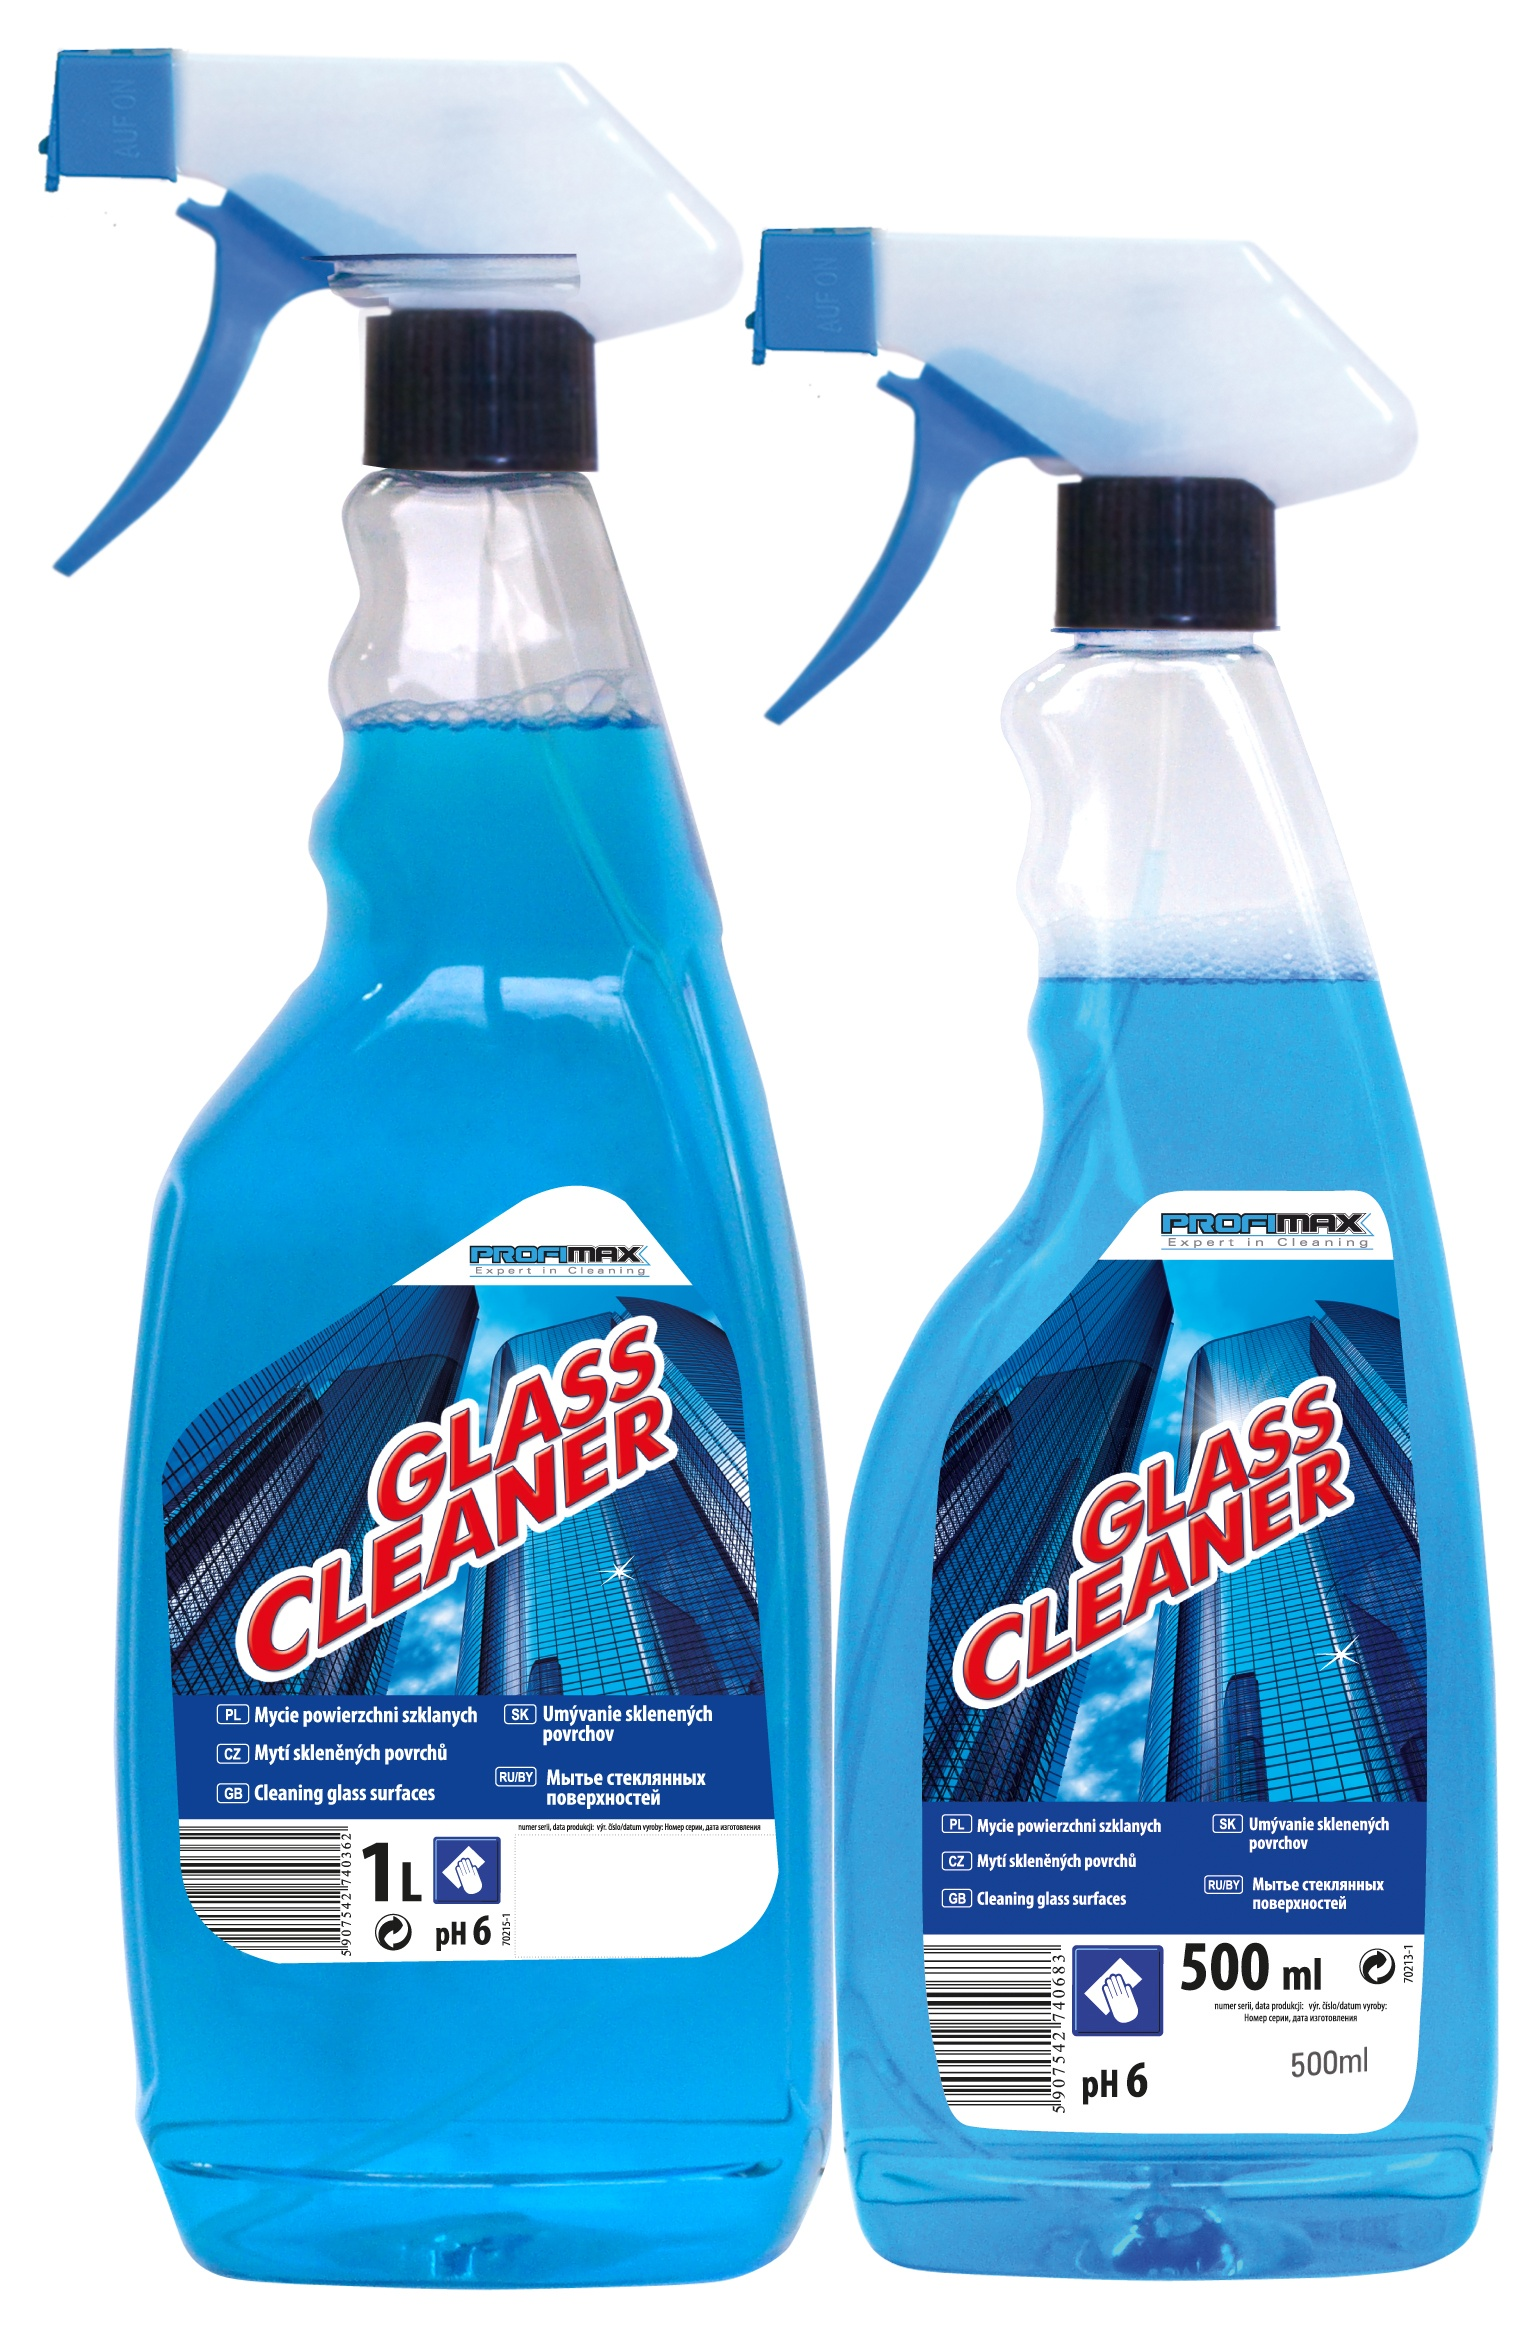 LAKMA GLASS CLEANER Čistič oken